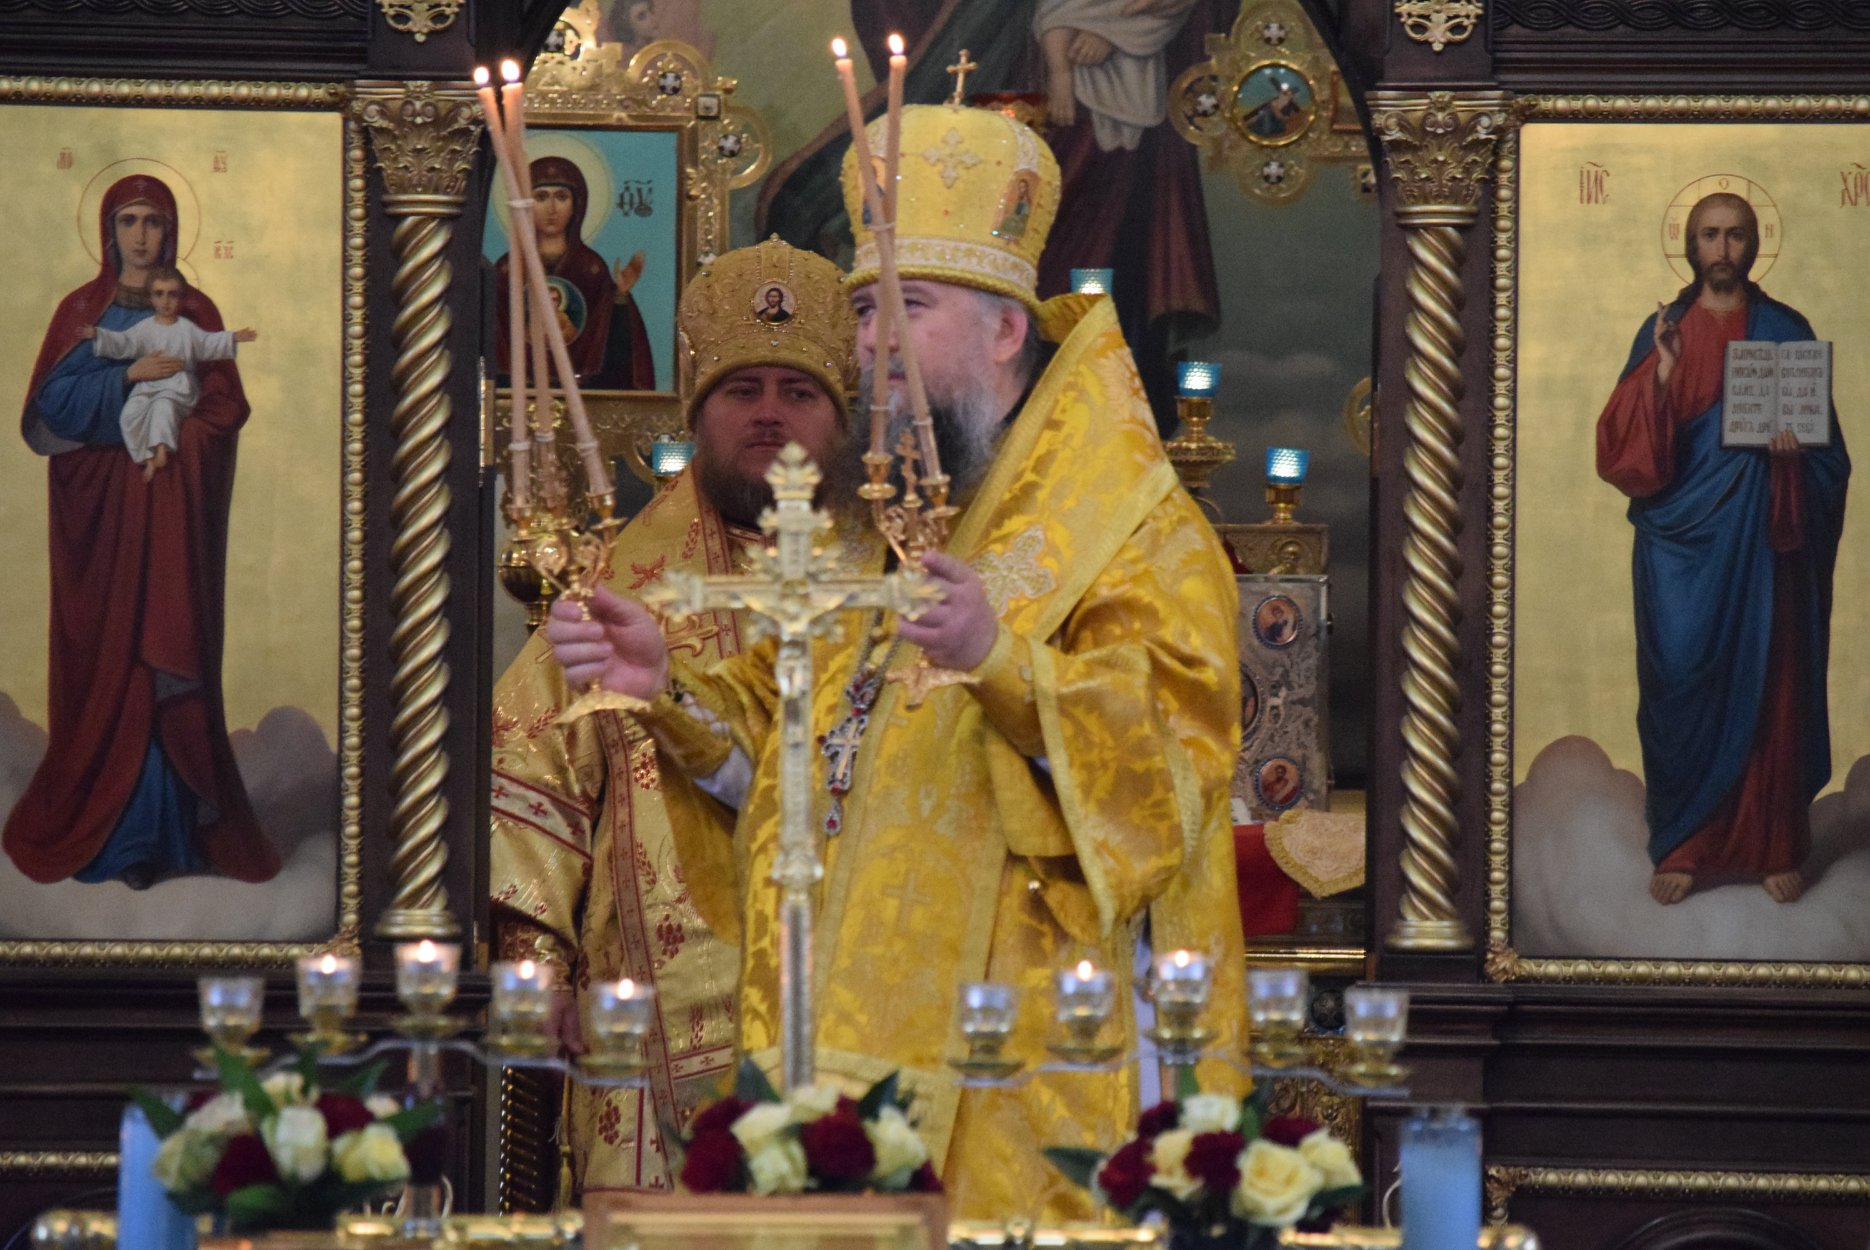 Father, Vladyka - how to contact the priest, the bishop